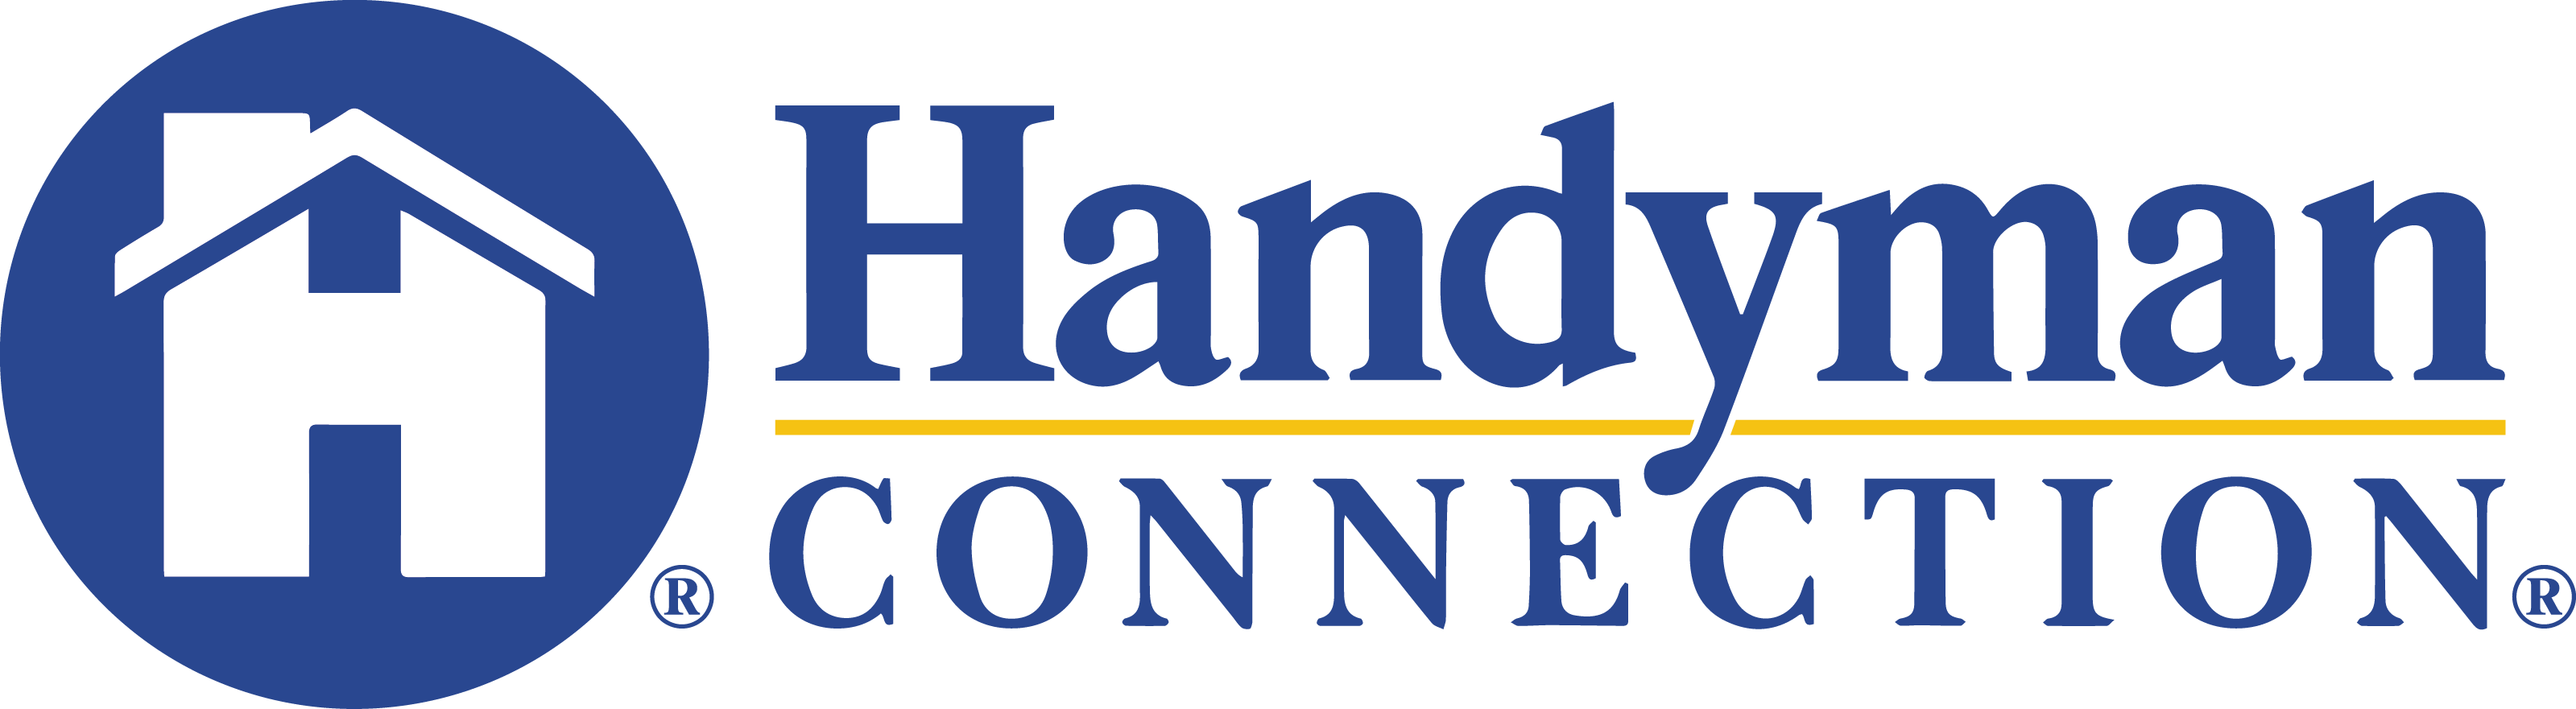 Handyman Connection of Ann Arbor, MI